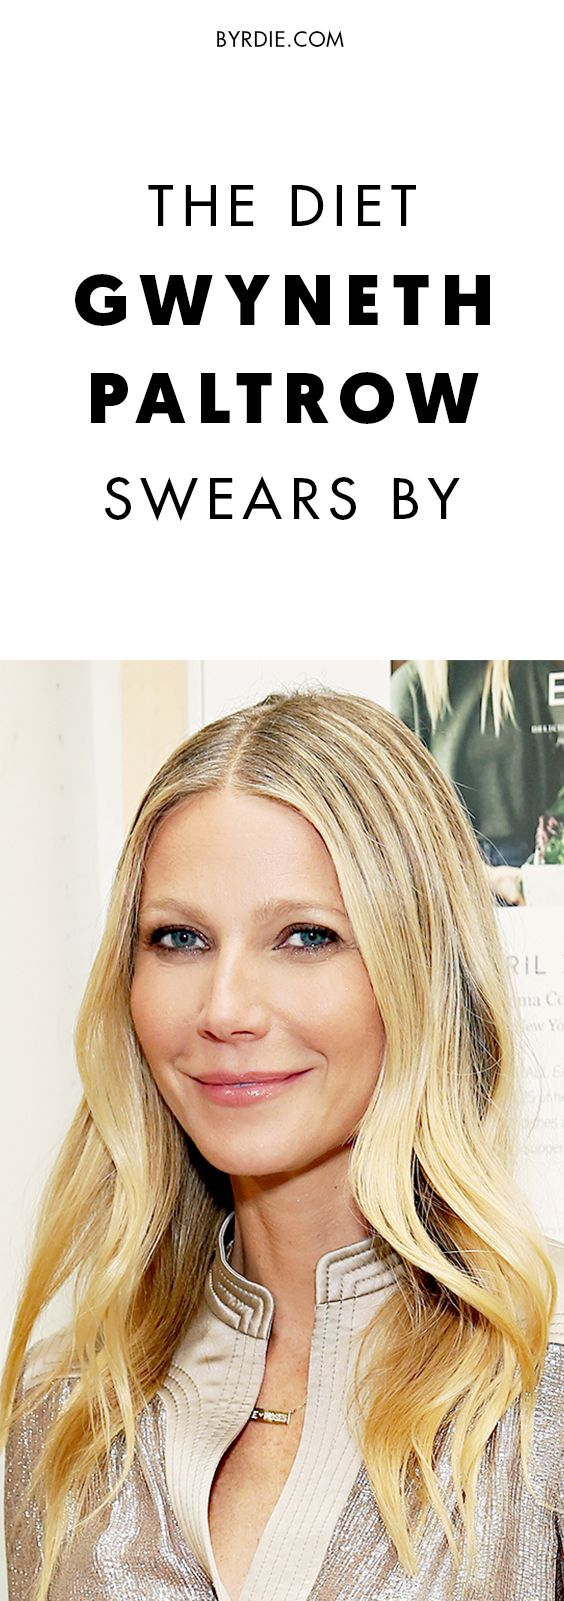 How to eat like Gwyneth Paltrow